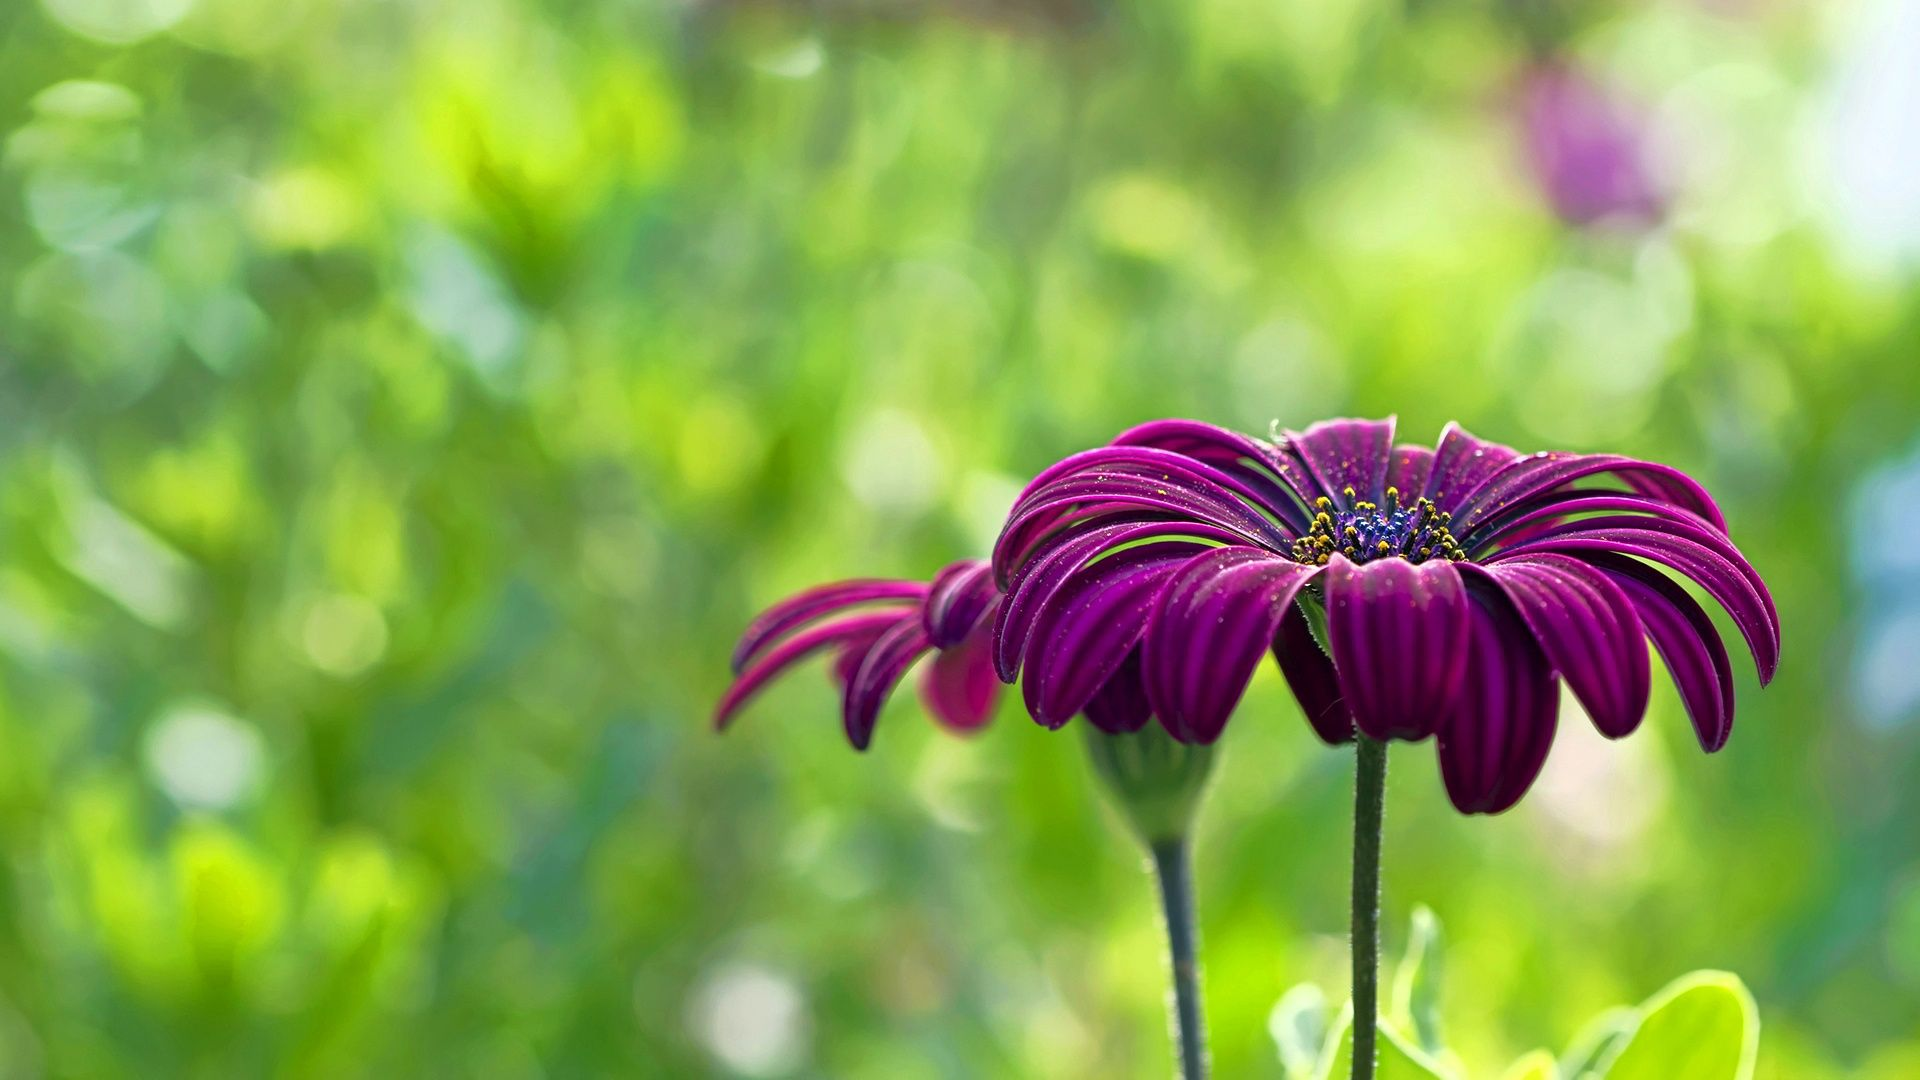 Awesome Flowers Wallpapers For Desktop Full Size Hd Pics Widescreen ...